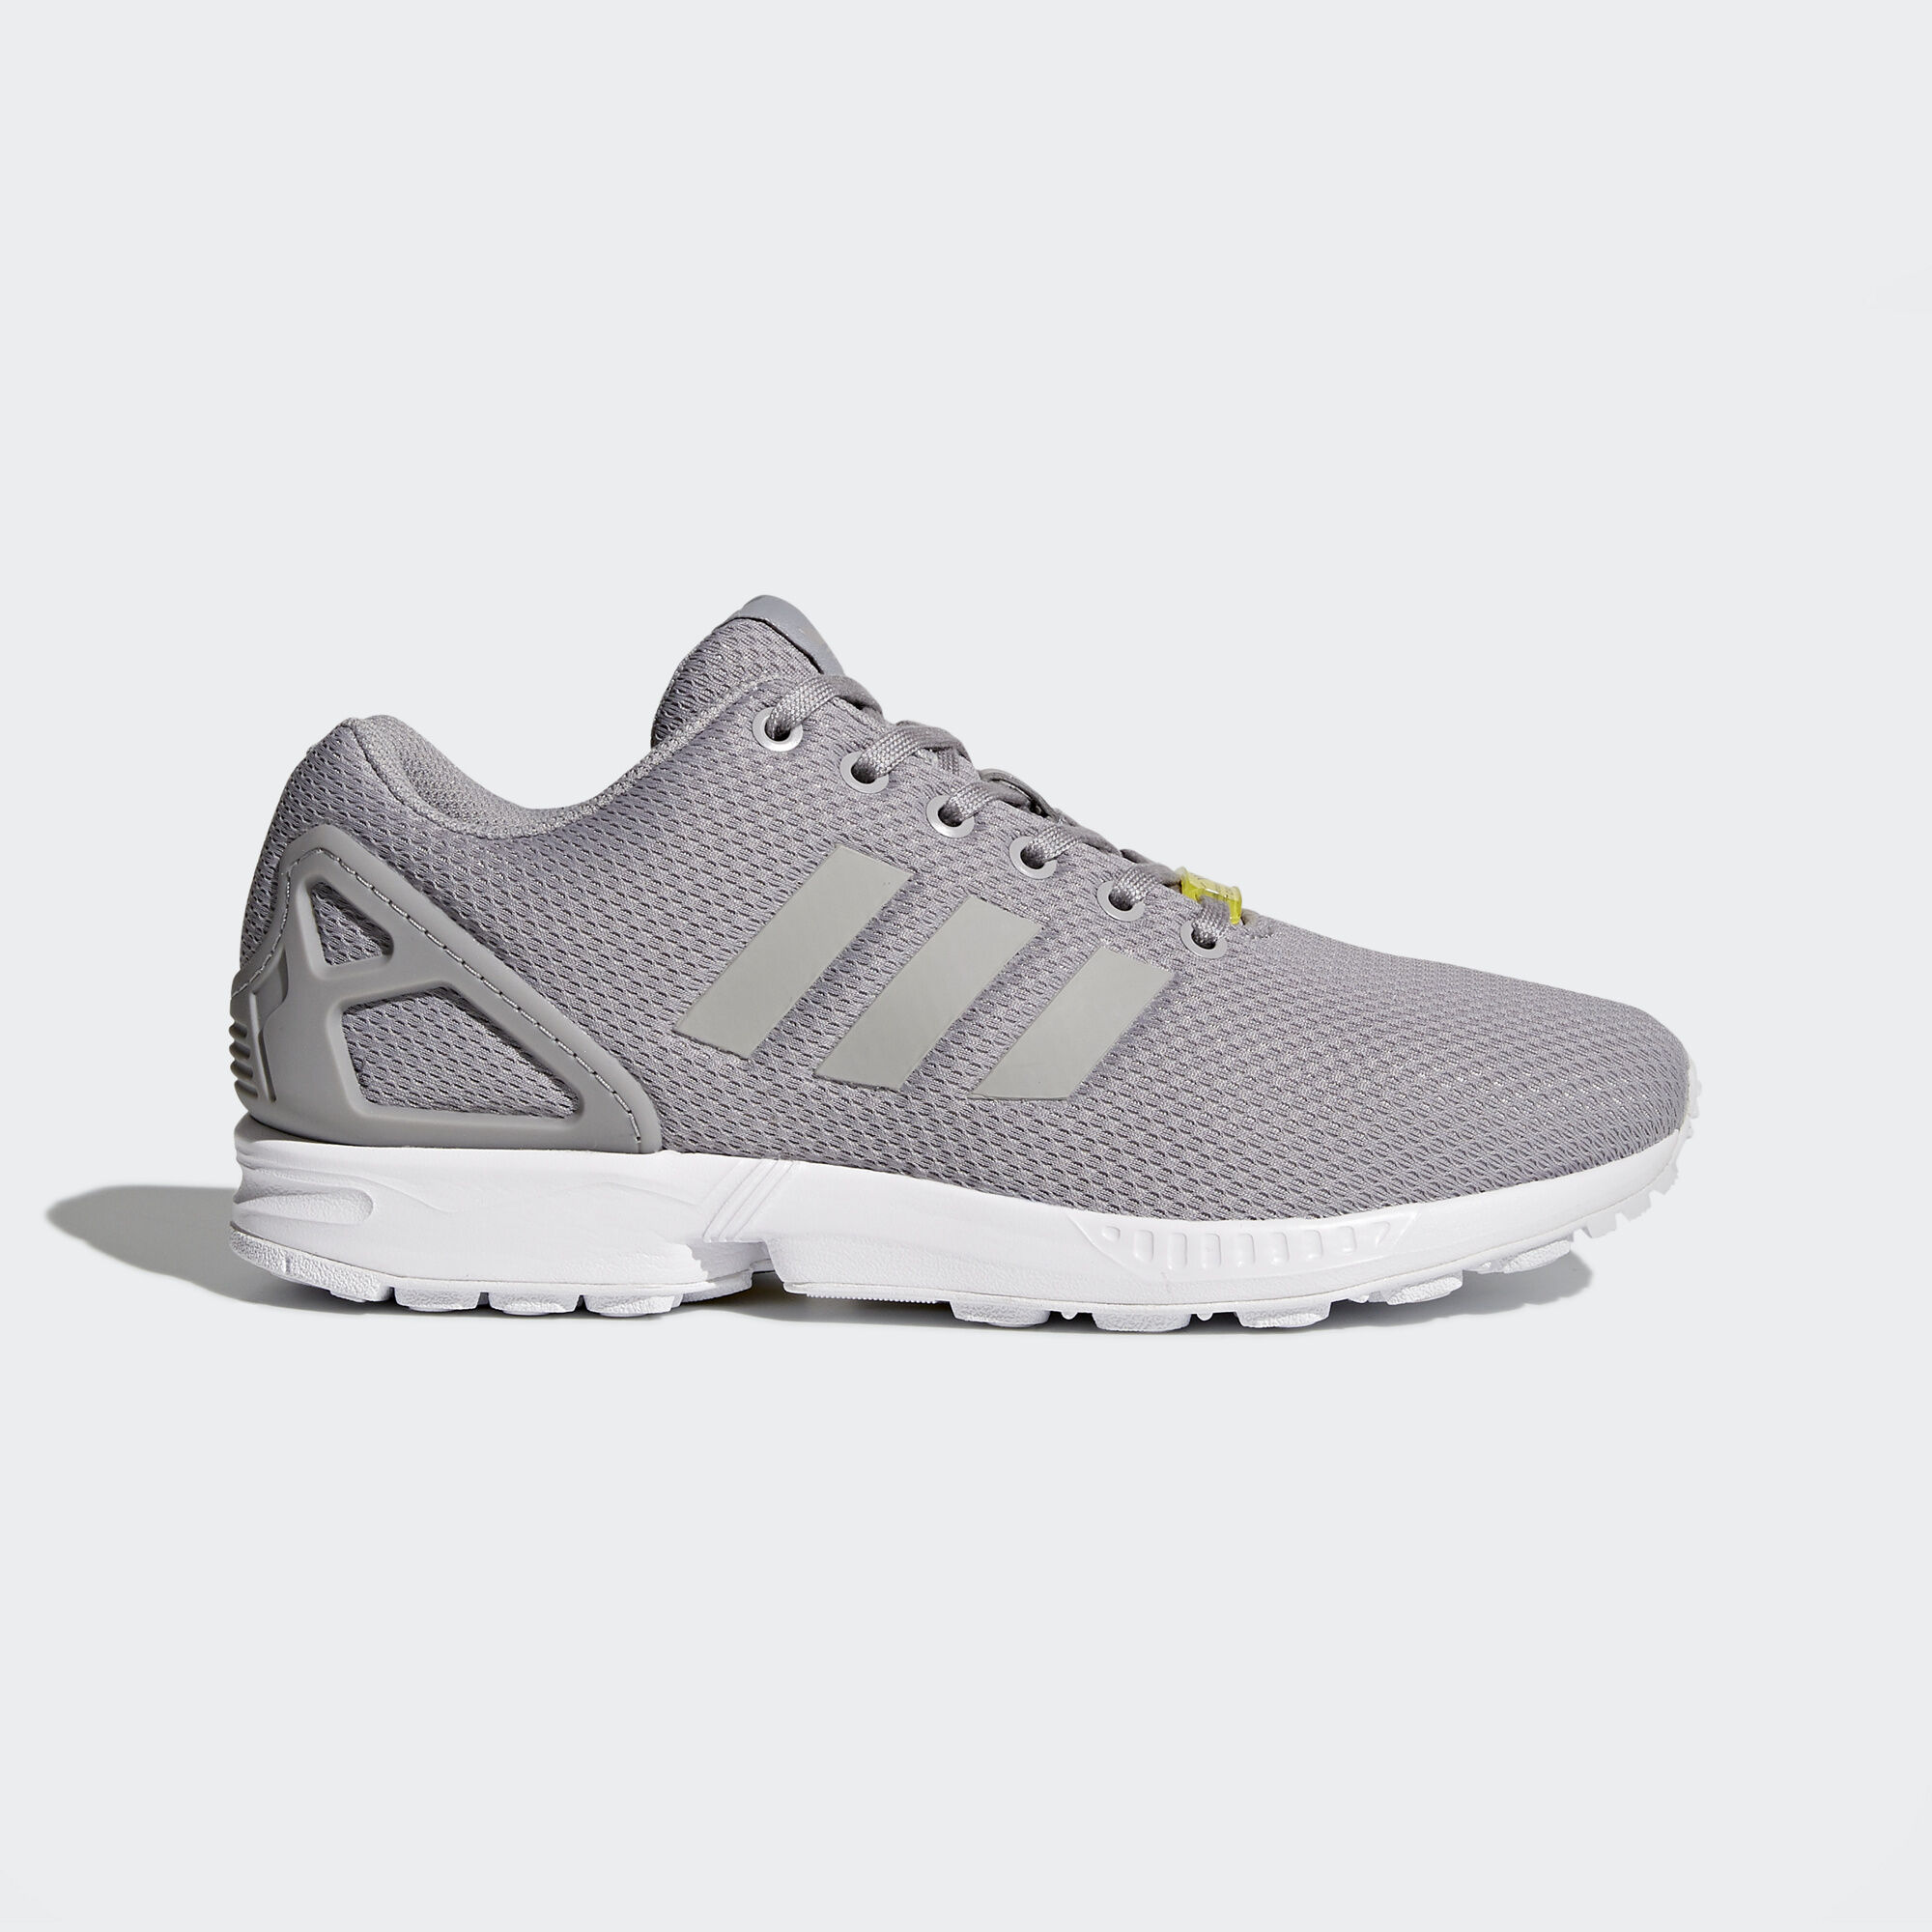 Adidas Zx Flux Light Solid